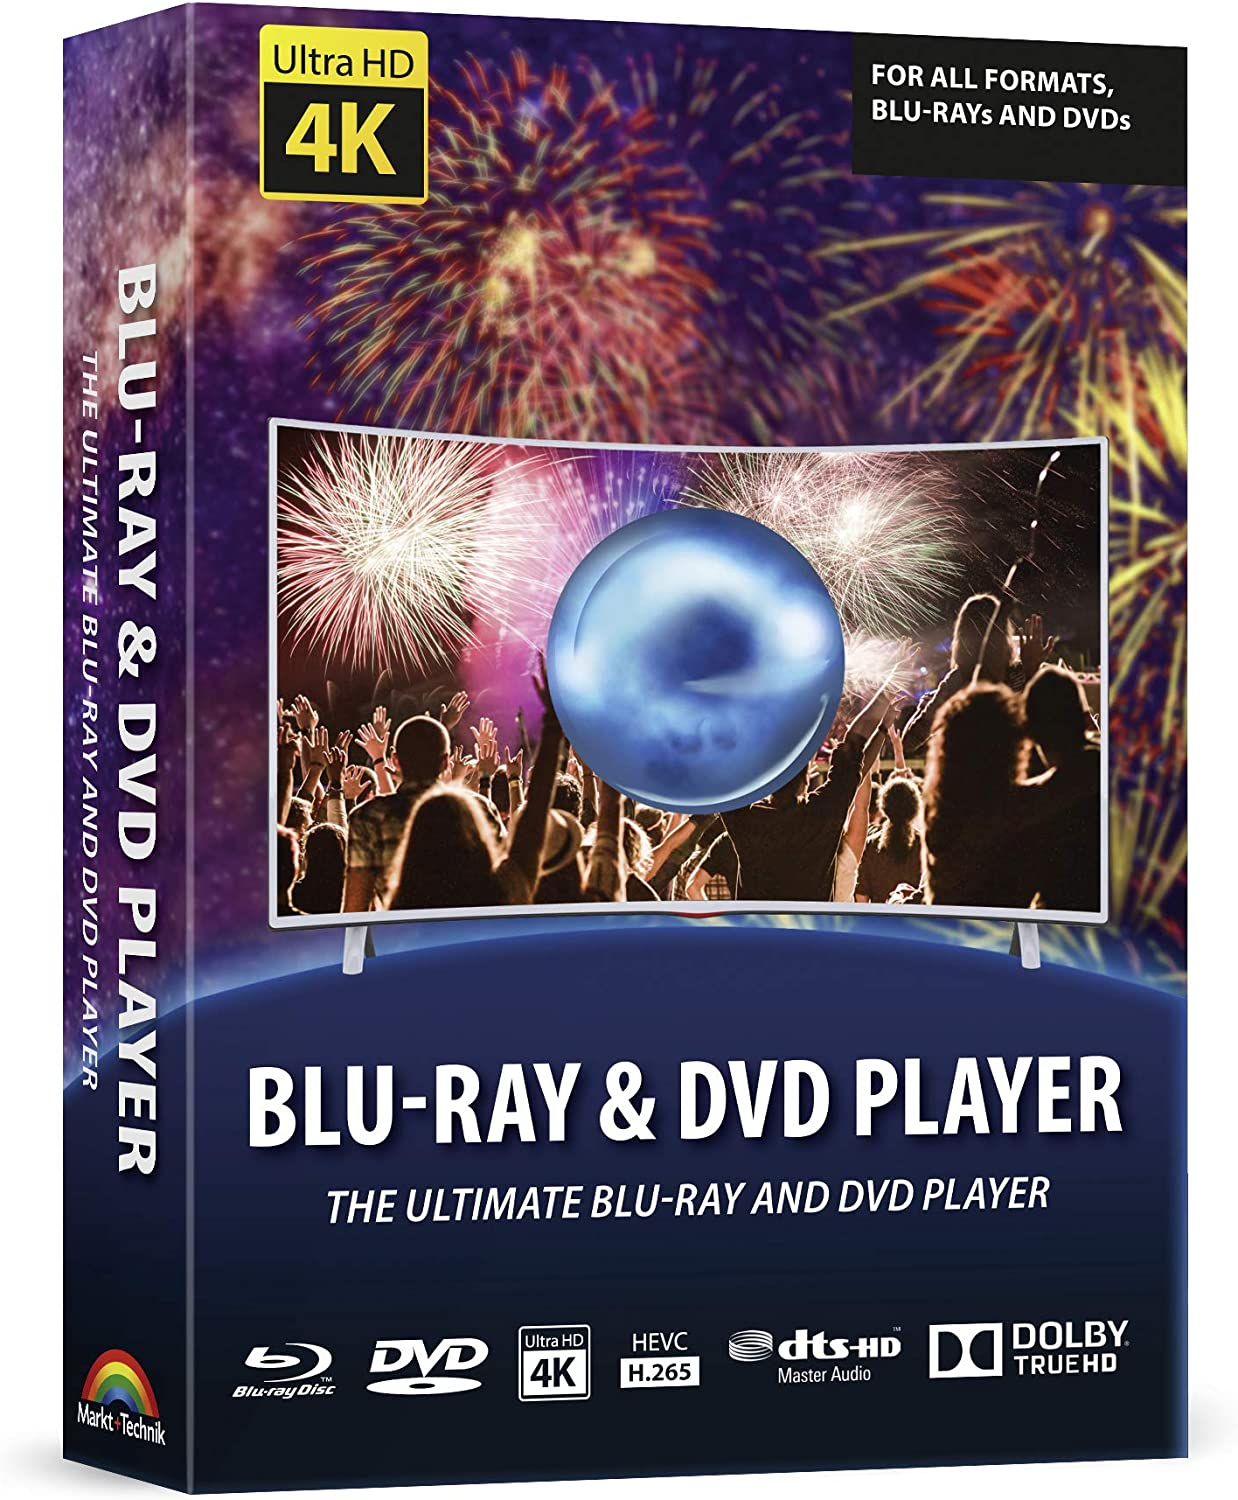 Blu-ray and DVD Player Software - The Media Center for your Films on Blu-ray, DVD and other Audio and Video Formats - Windows 10 - 8.1 - 7